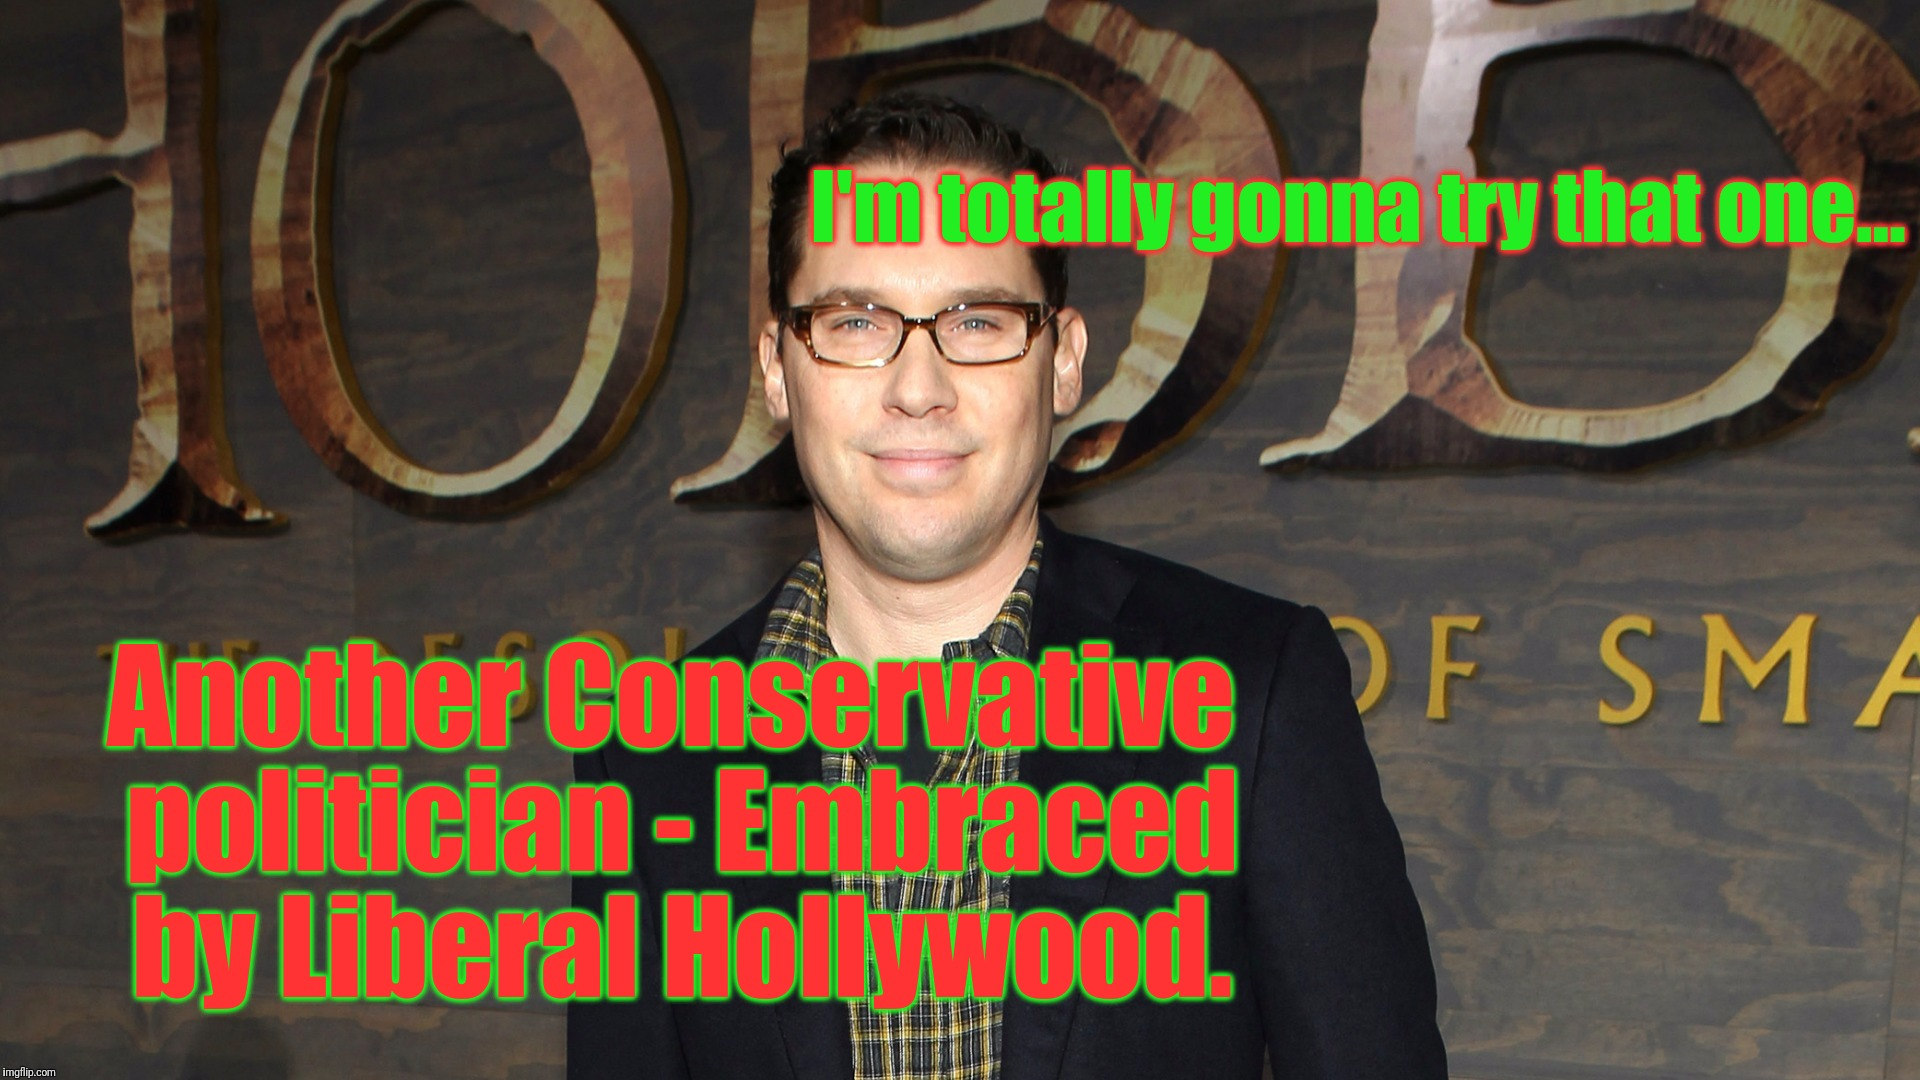 Another Conservative politician - Embraced by Liberal Hollywood. I'm totally gonna try that one... | made w/ Imgflip meme maker